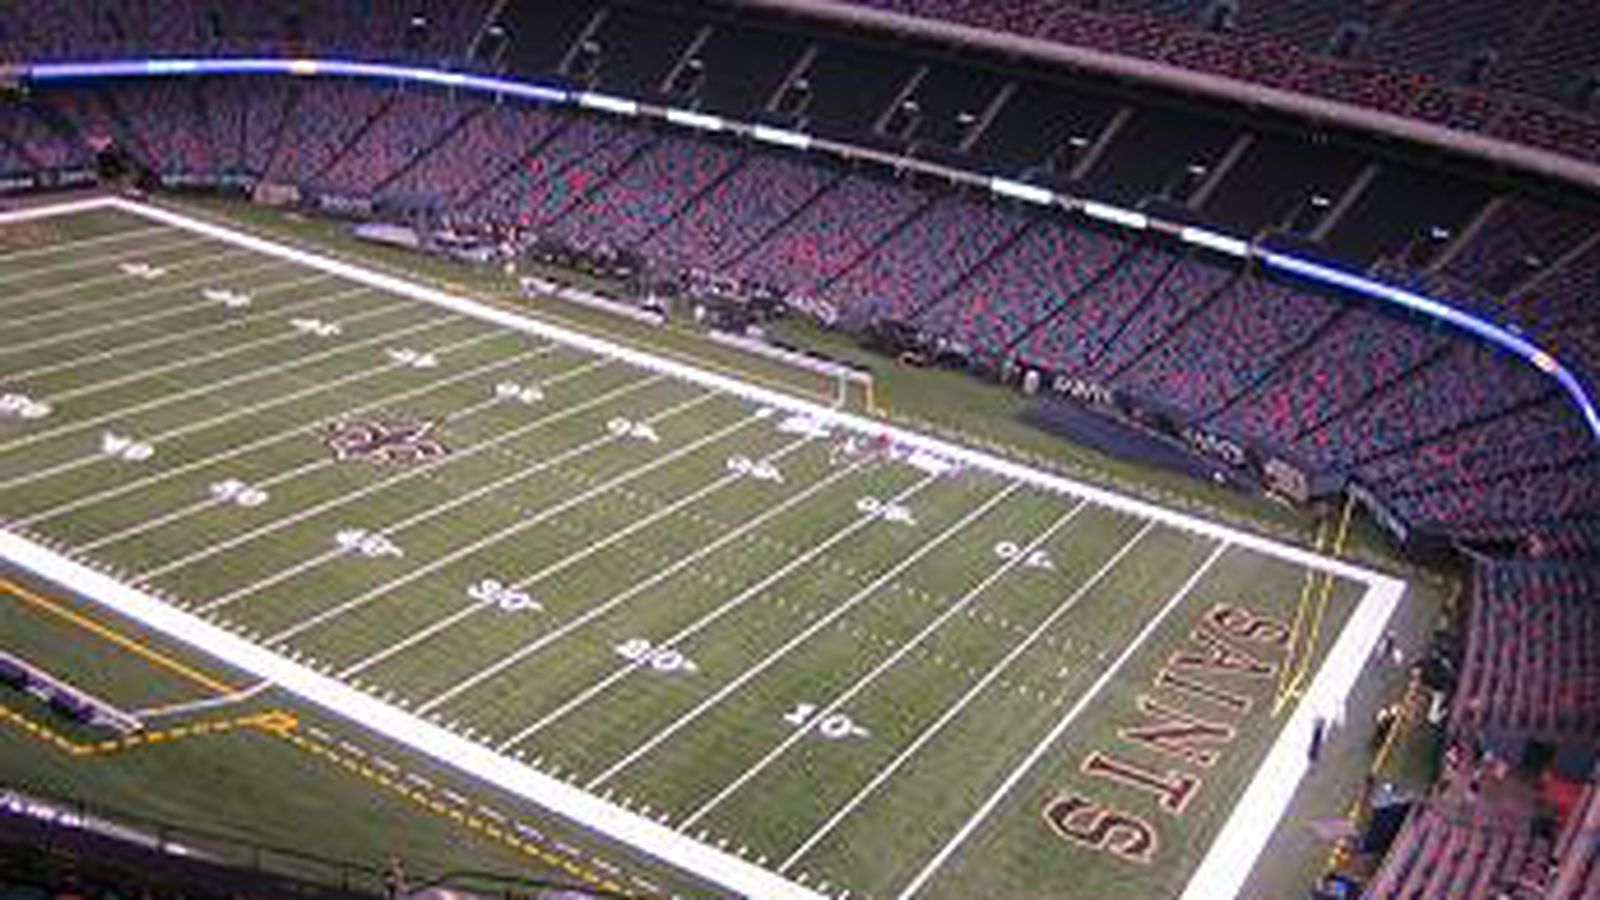 Your first look at the new mercedes benz superdome video for Where is the mercedes benz superdome